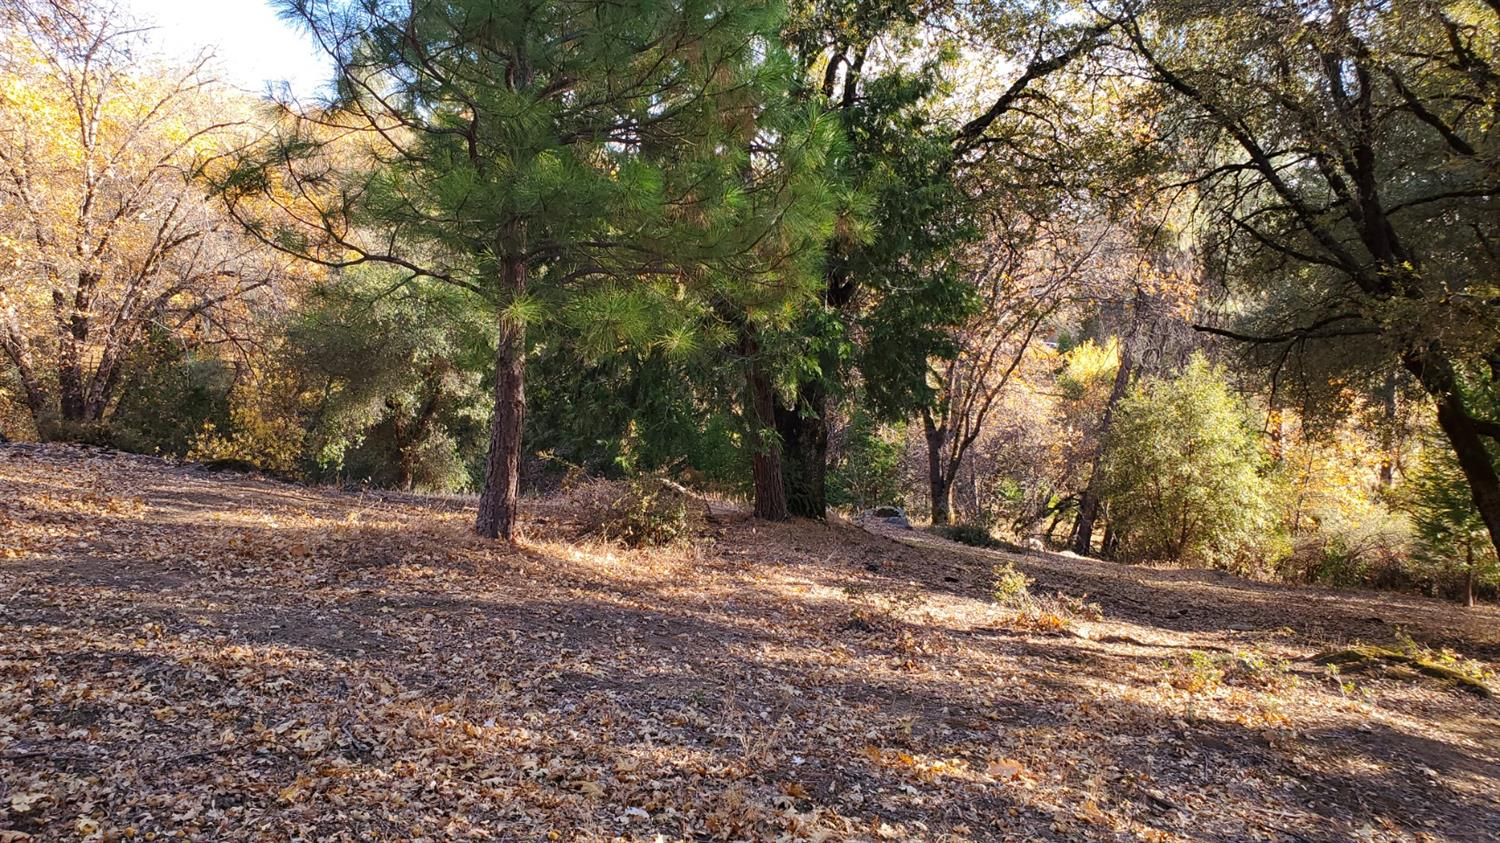 Build your home in the country! This parcel has easy road access, with additional access on the side. Close to shopping. Electric and water to the site. Private and building pad ready to be cut.